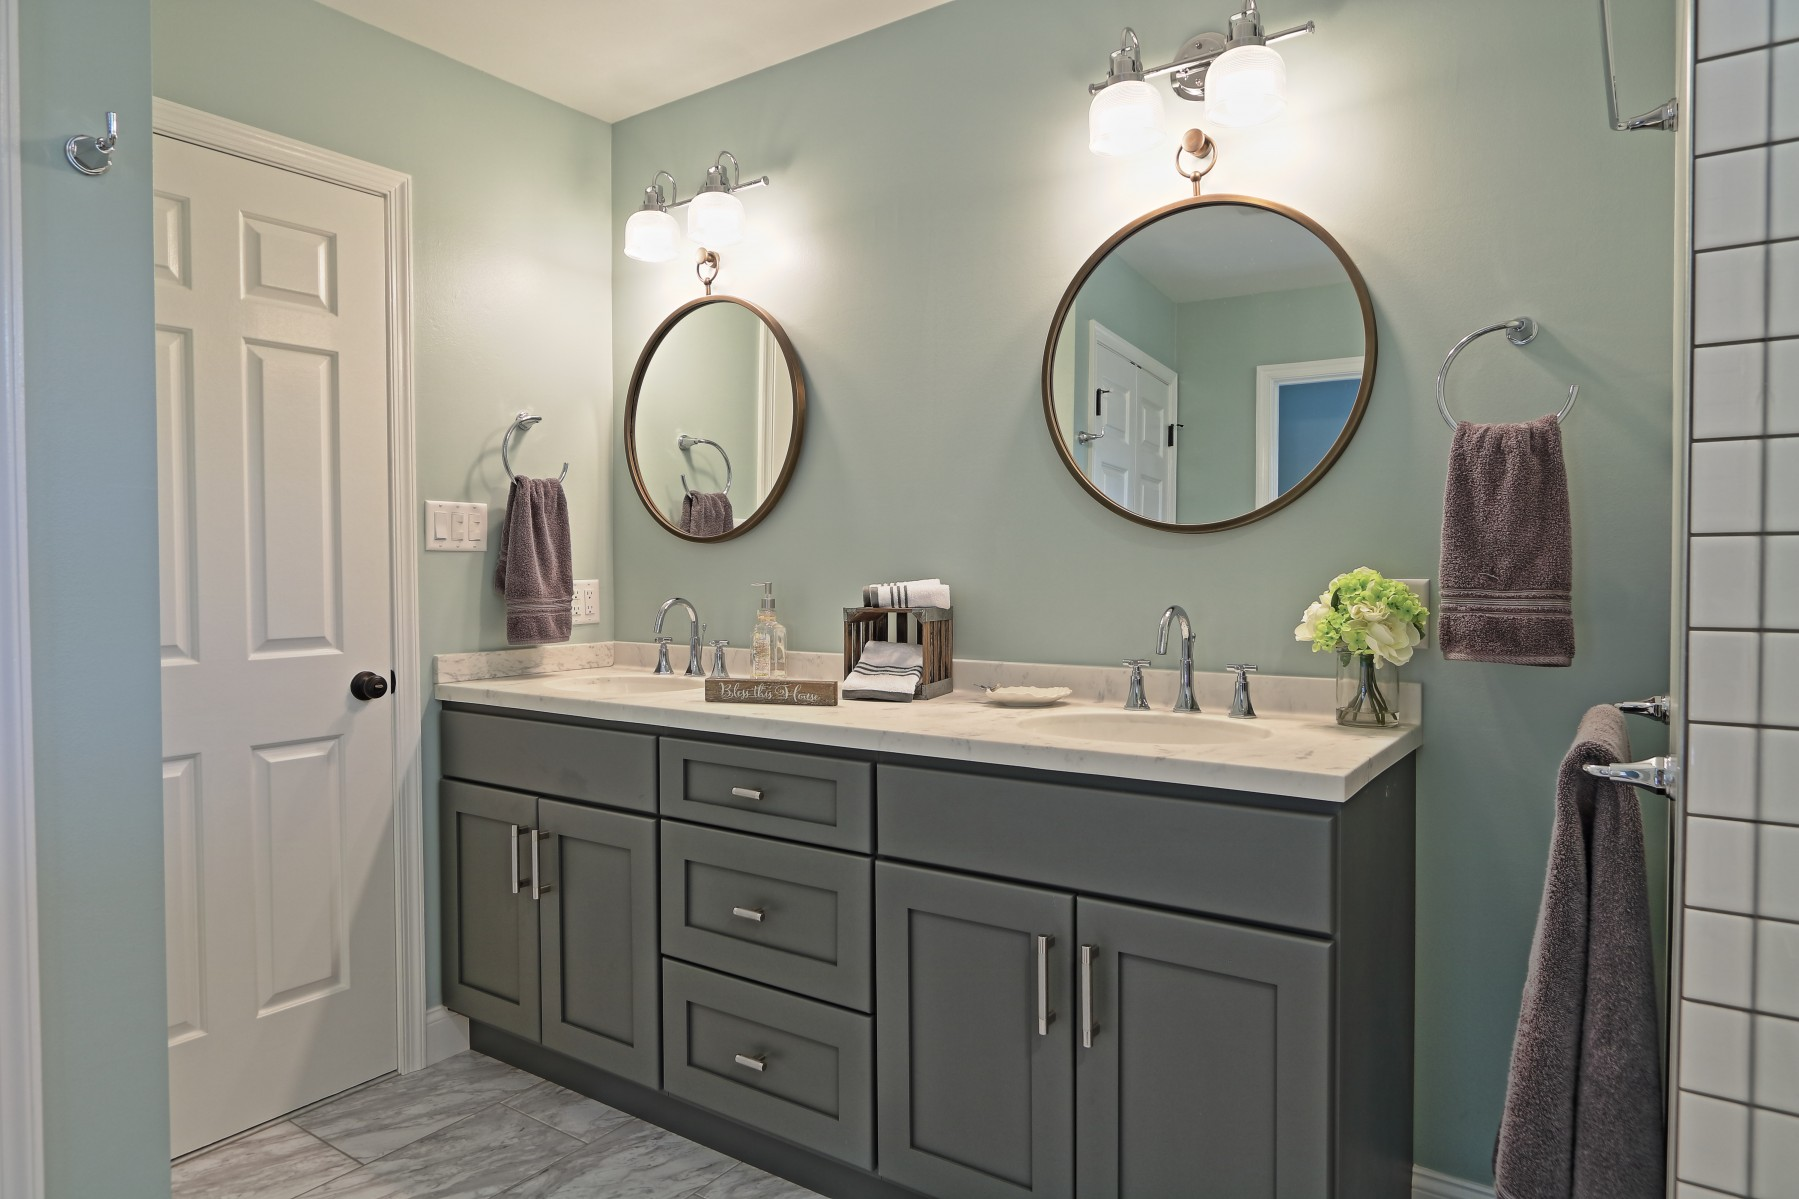 West Bayberry Master Bath - HOME-TIME Renovation, LLC